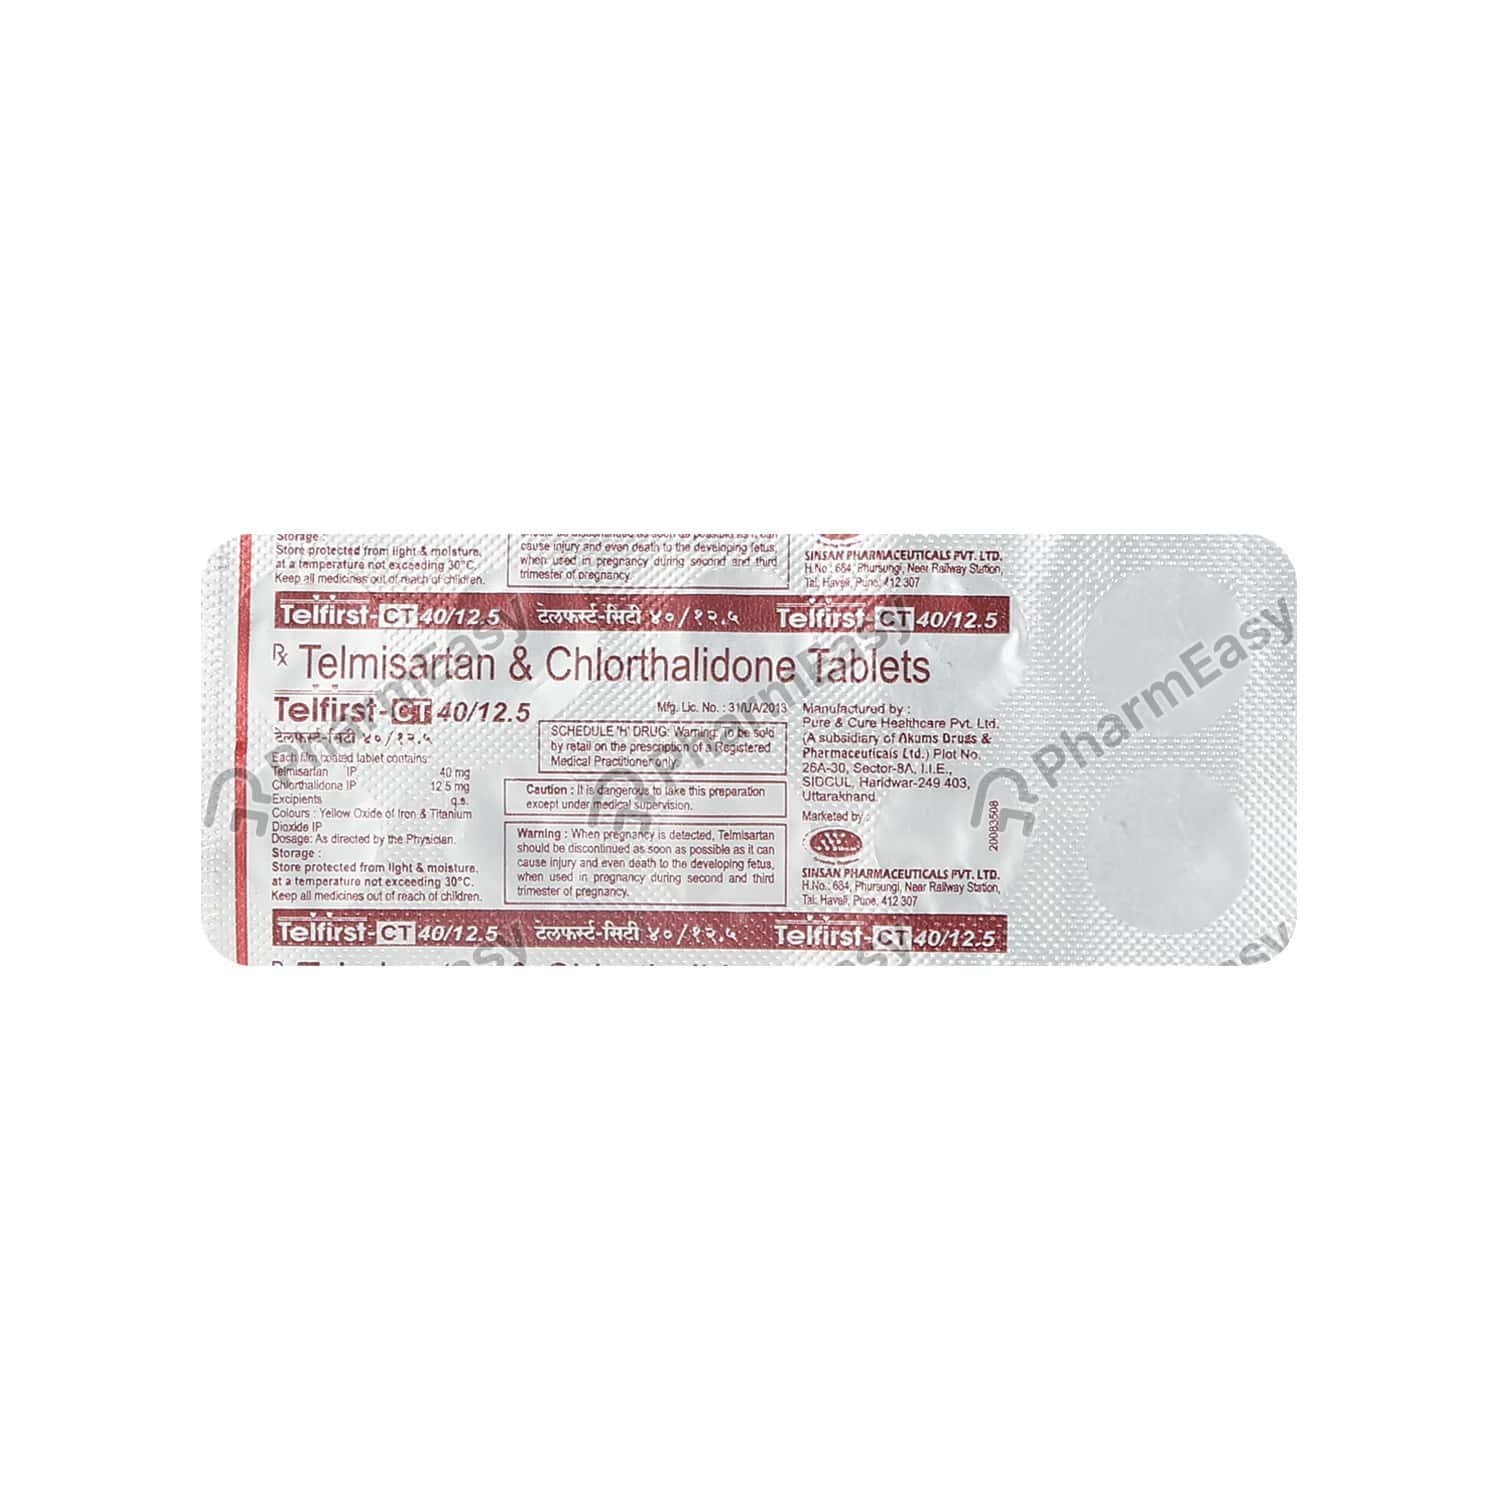 Telfirst Ct 40/12.5mg Strip Of 10 Tablets